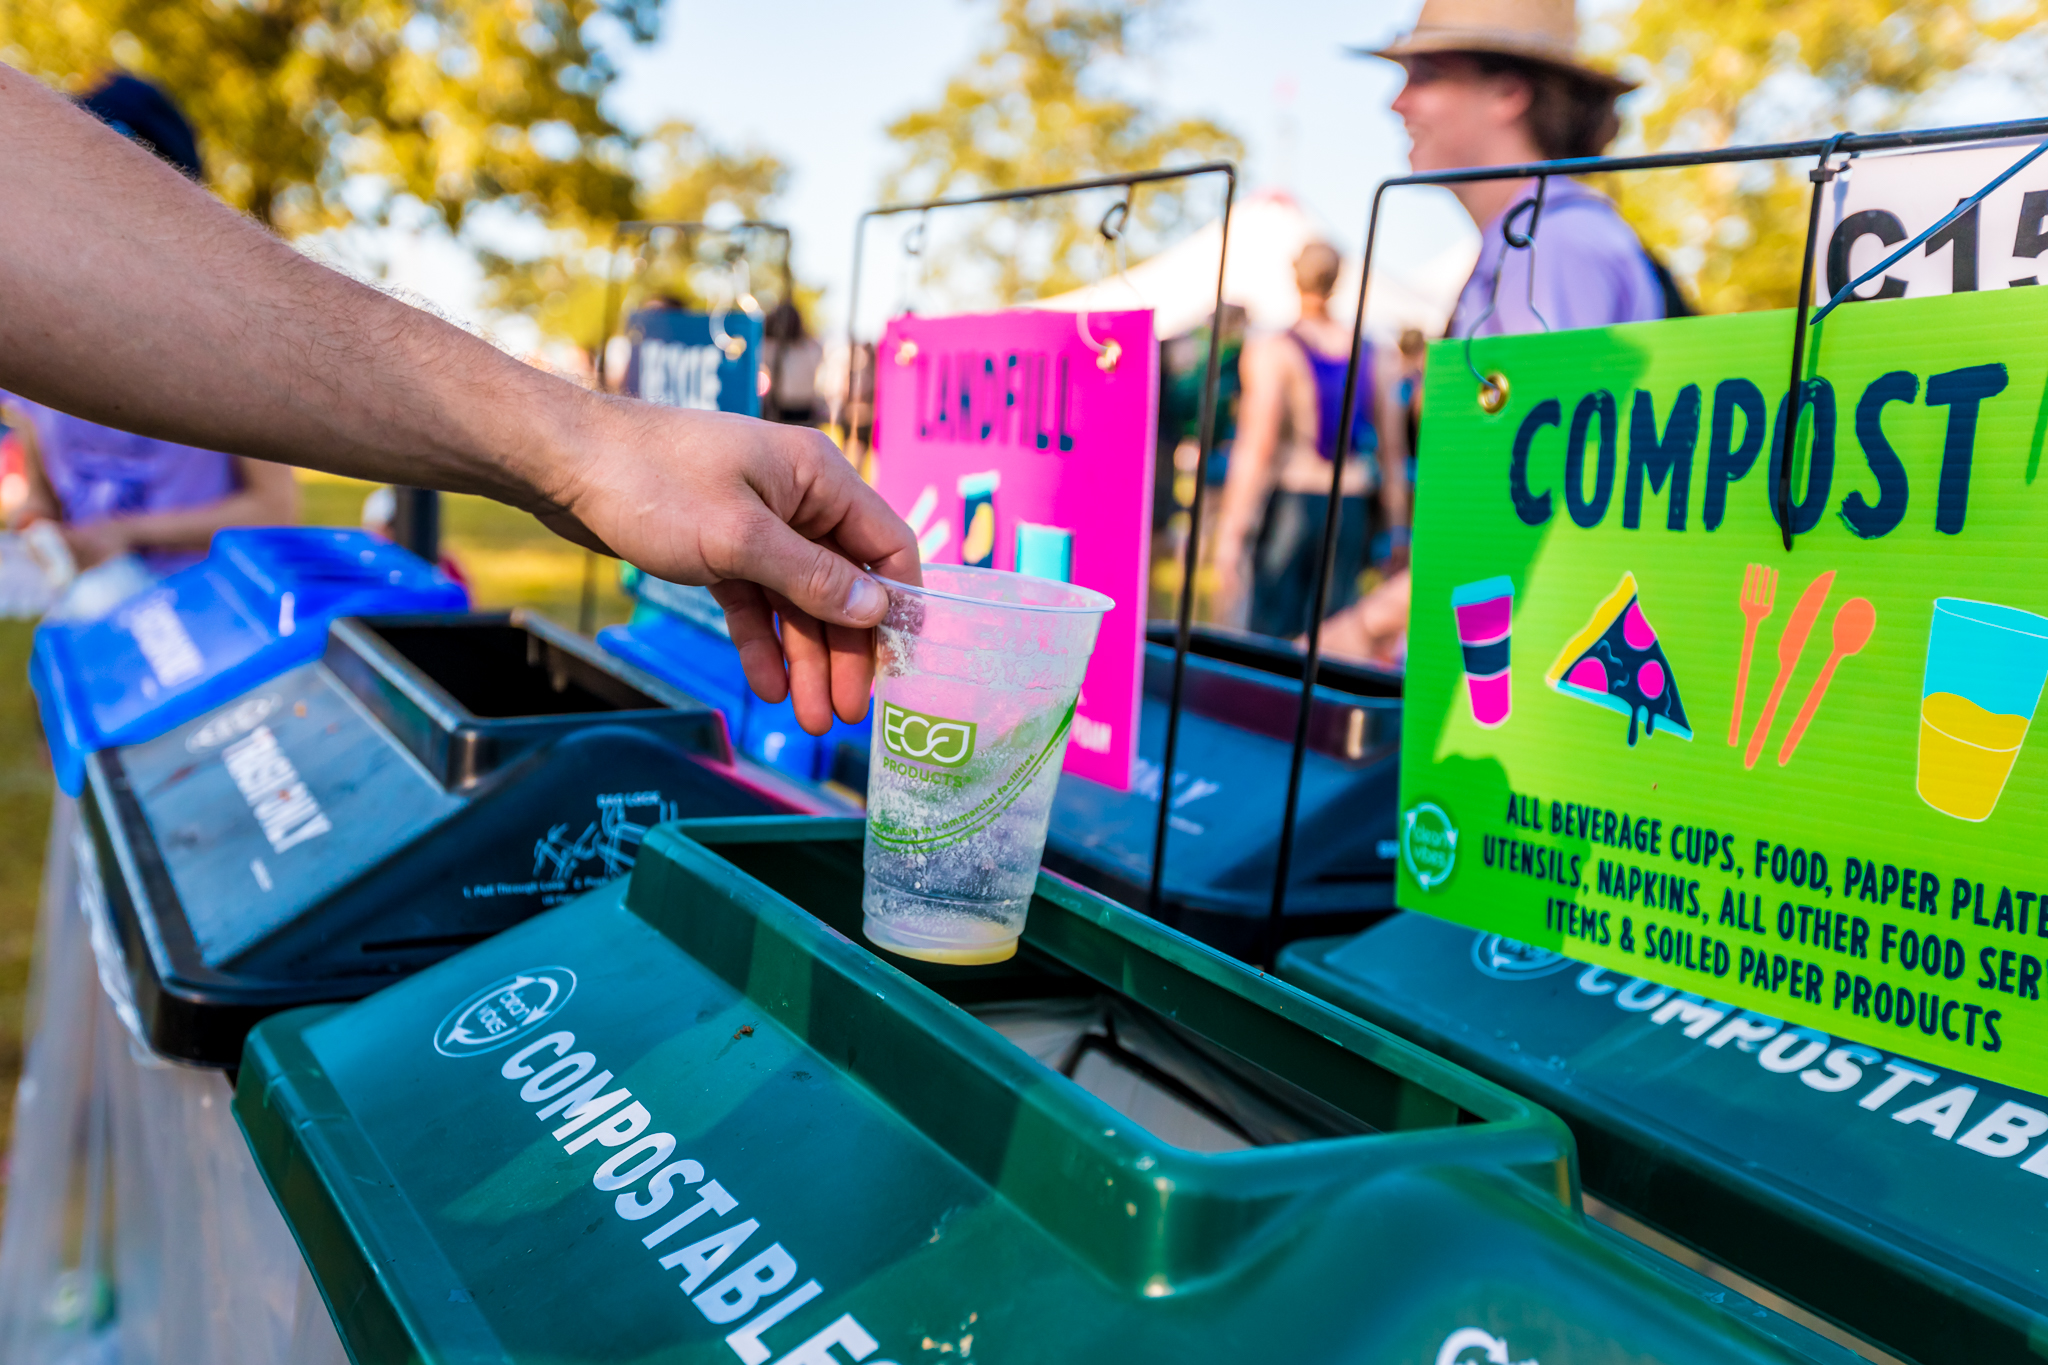 Recycle and reuse while listening to music at Bonnaroo.